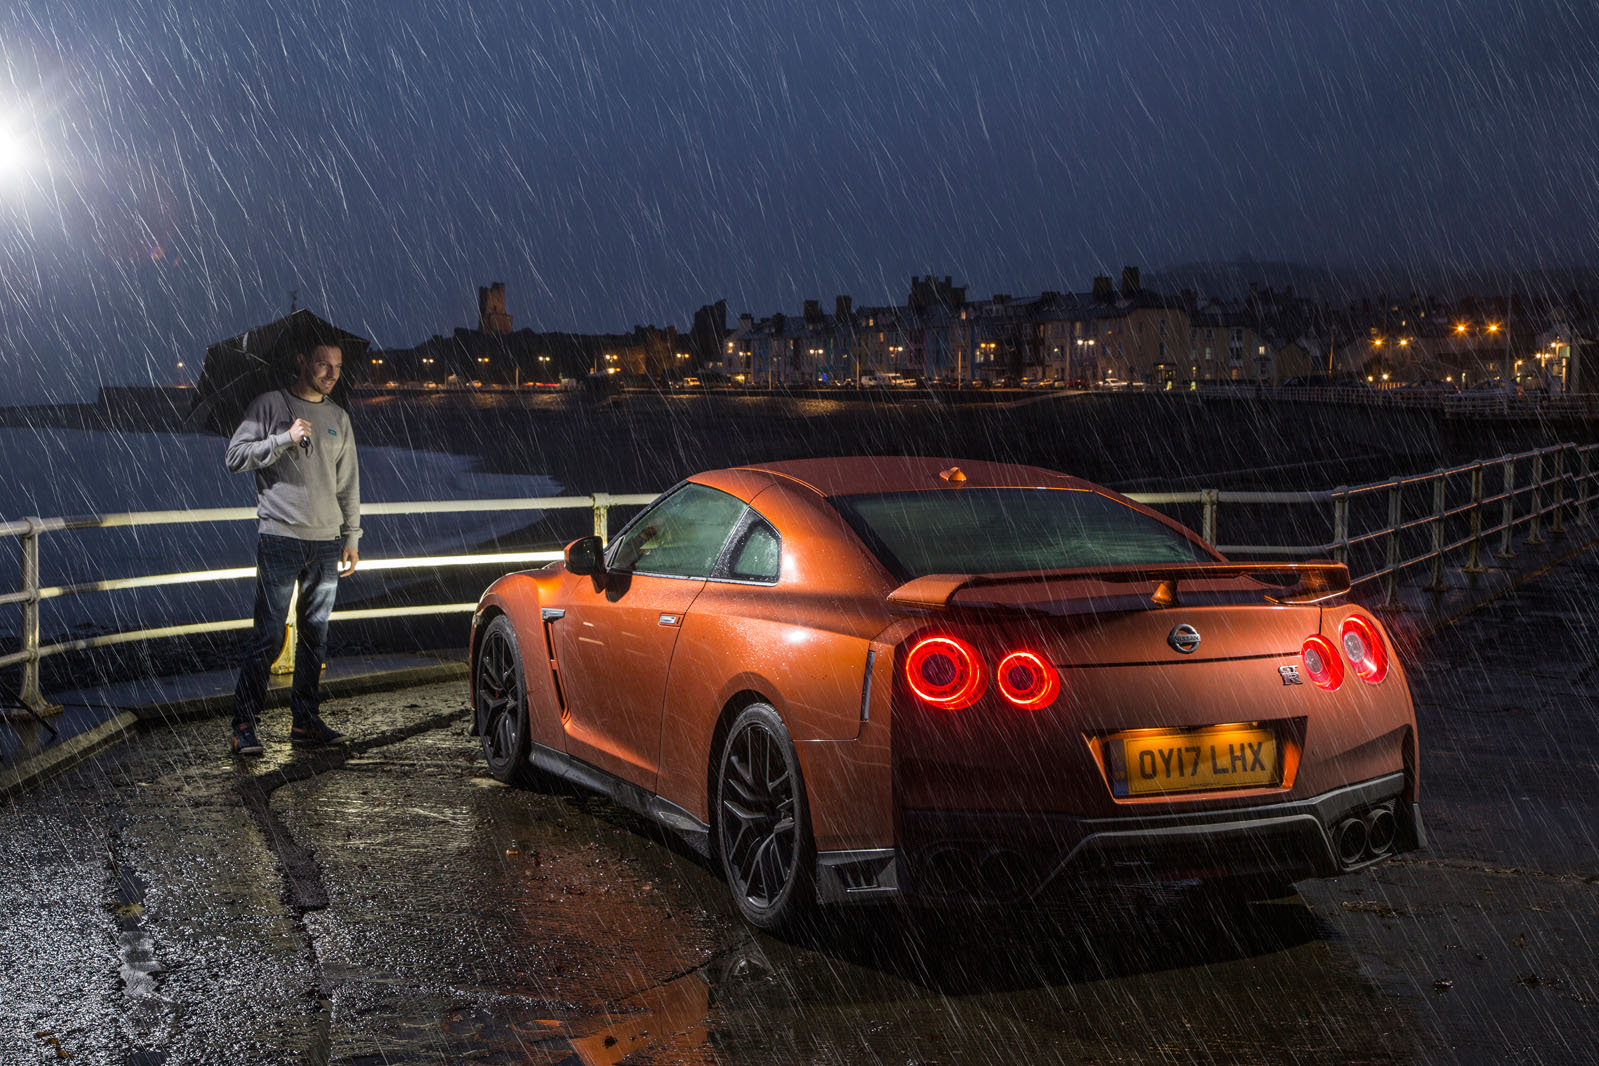 Nissan Gt R A Race Against The Sun To Celebrate 10 Years Of Big Scenery Images And I Would Have Chance Really Push Impenetrable Fog Lashing Rain Were Not What We Had In Mind